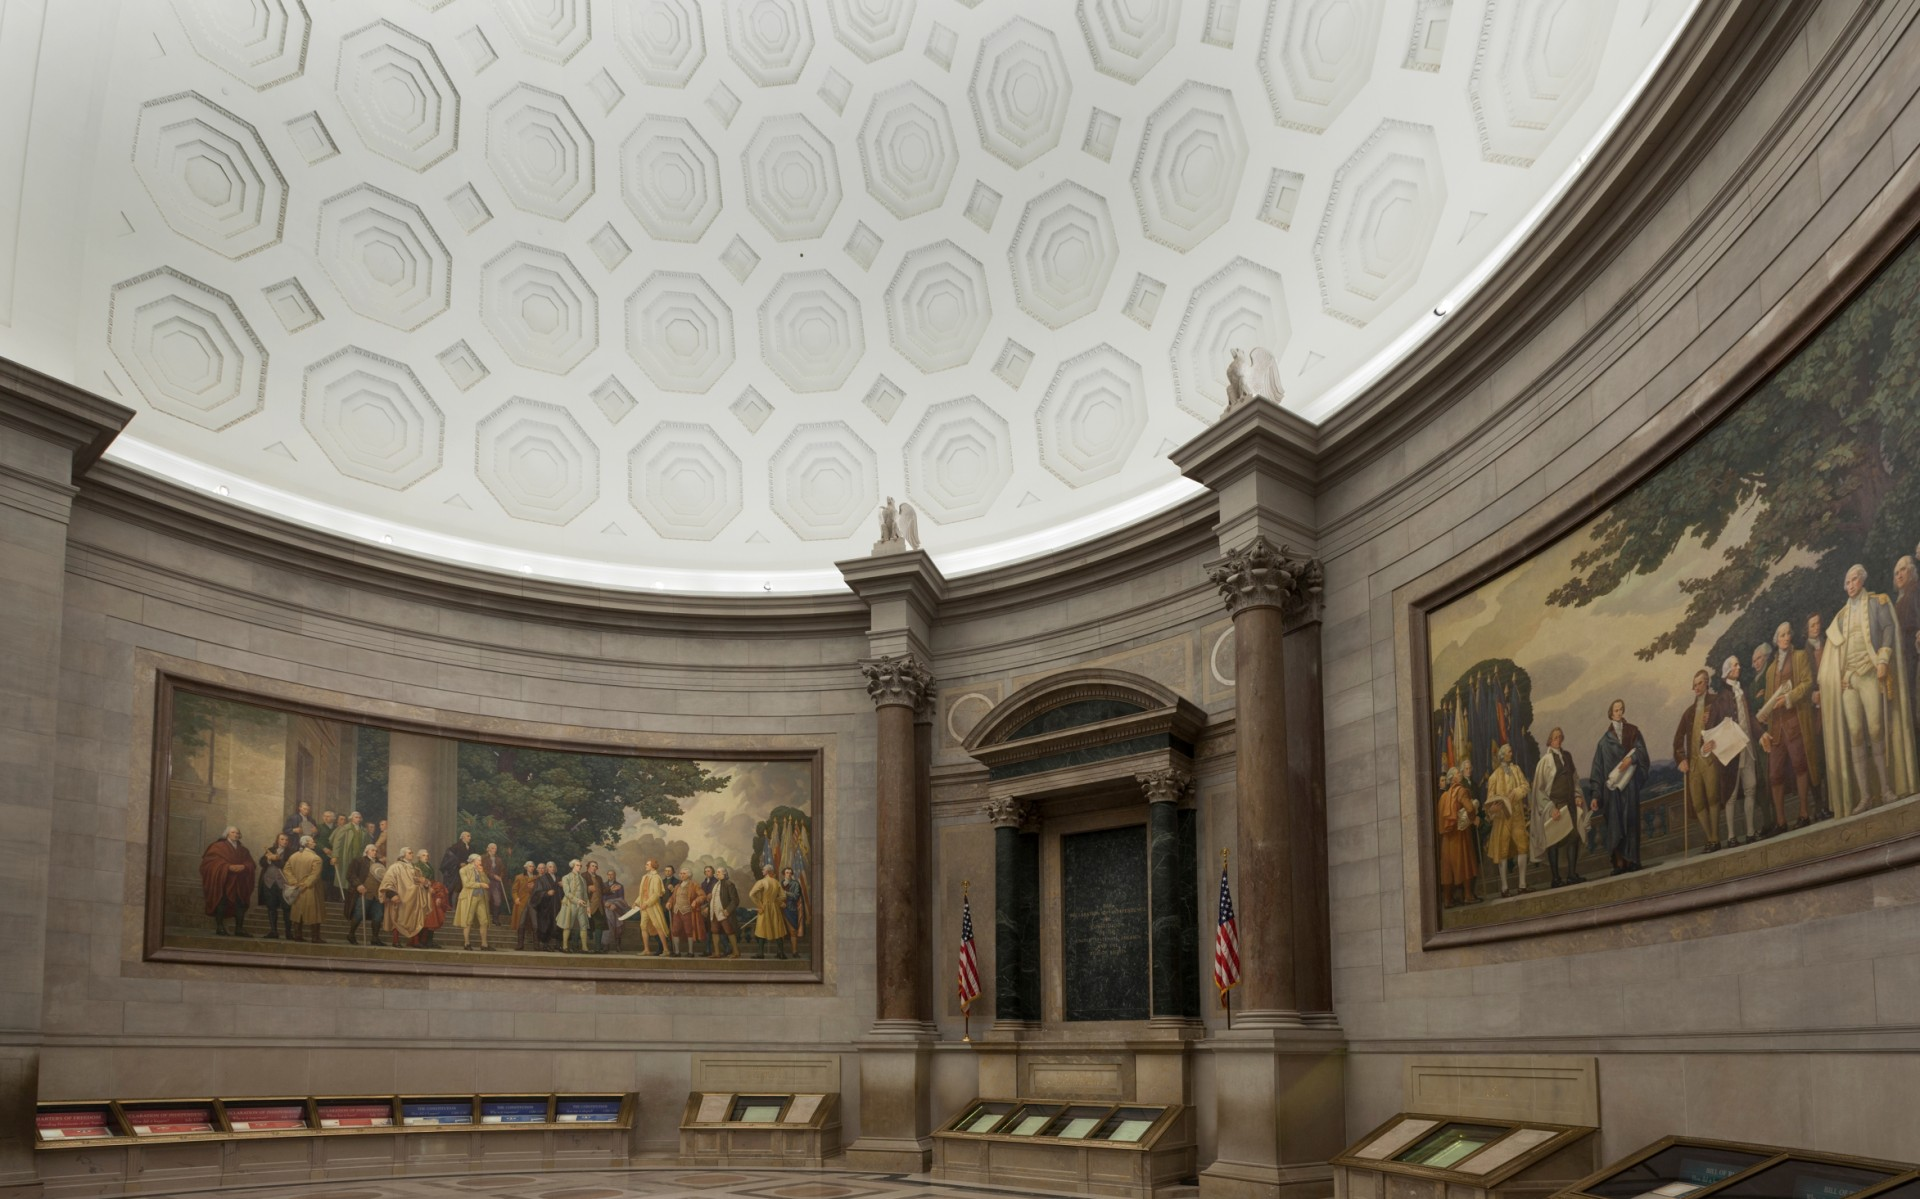 Lumenbeam Medium luminaires light the Rotunda's two large murals from opposing sides.